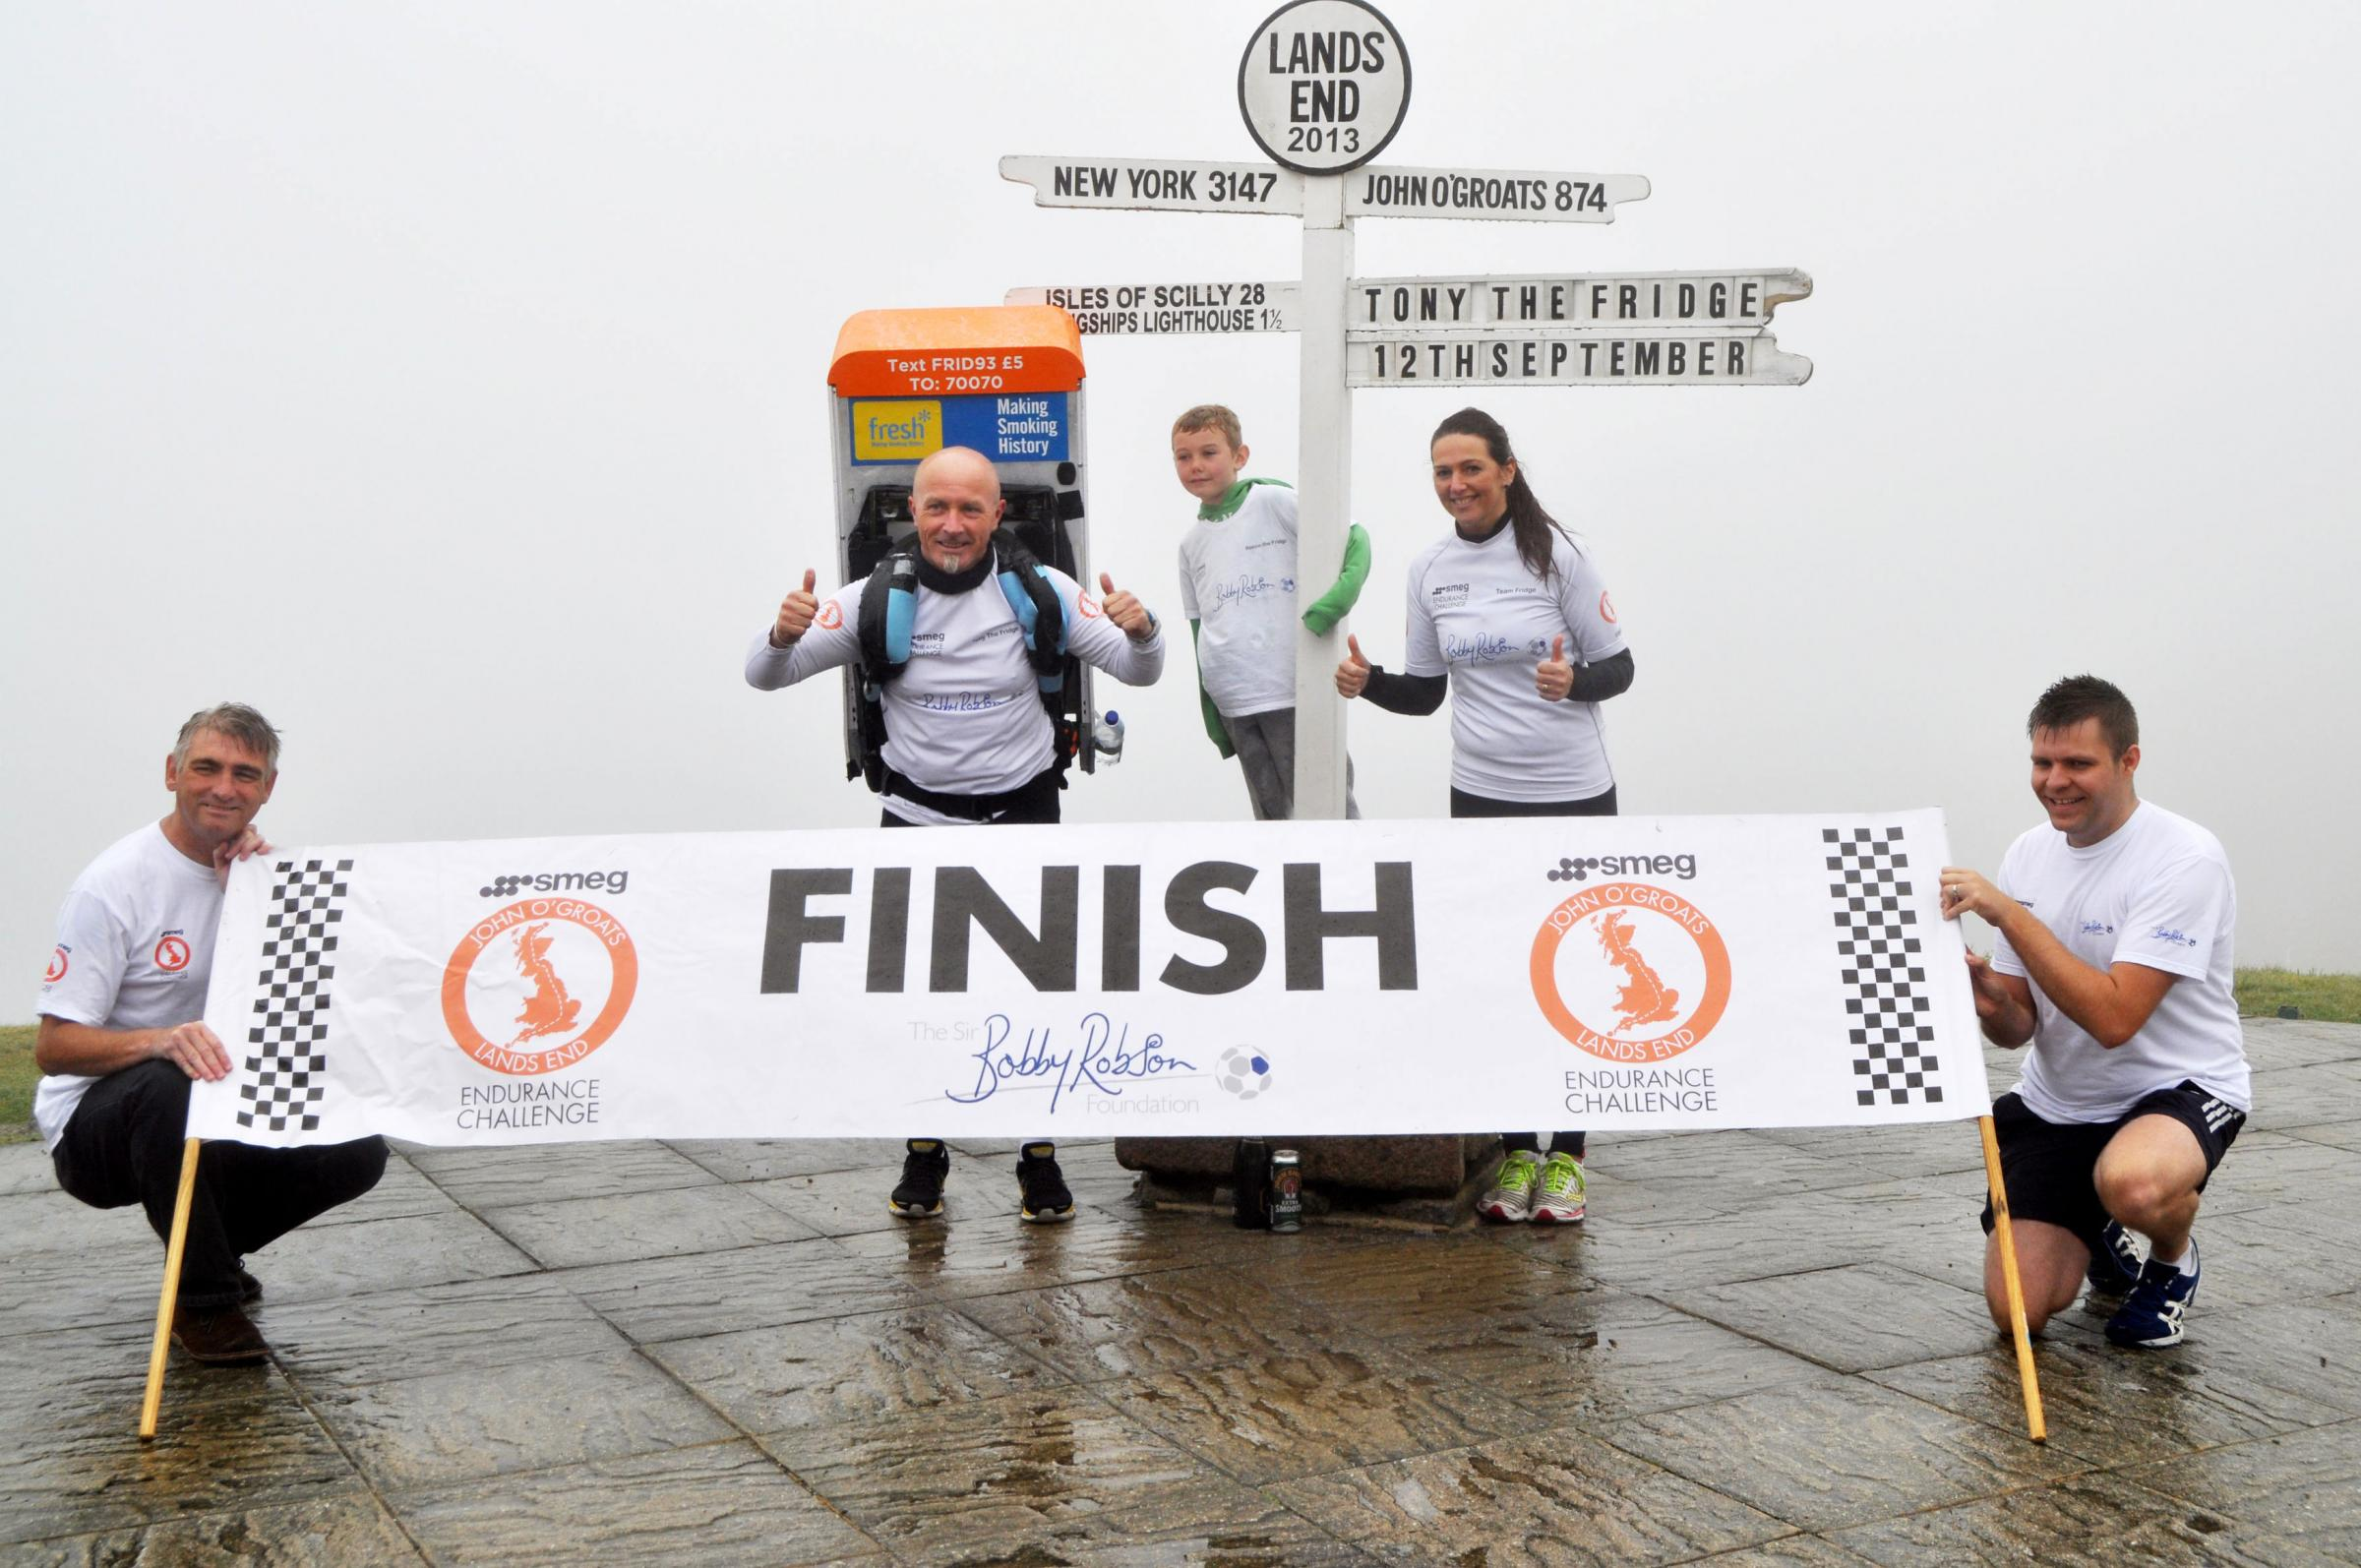 Tony Phoenix-Morrison, with his support team, completing his John O'Groats to Lands End run with a 42.5kg fridge on his back.